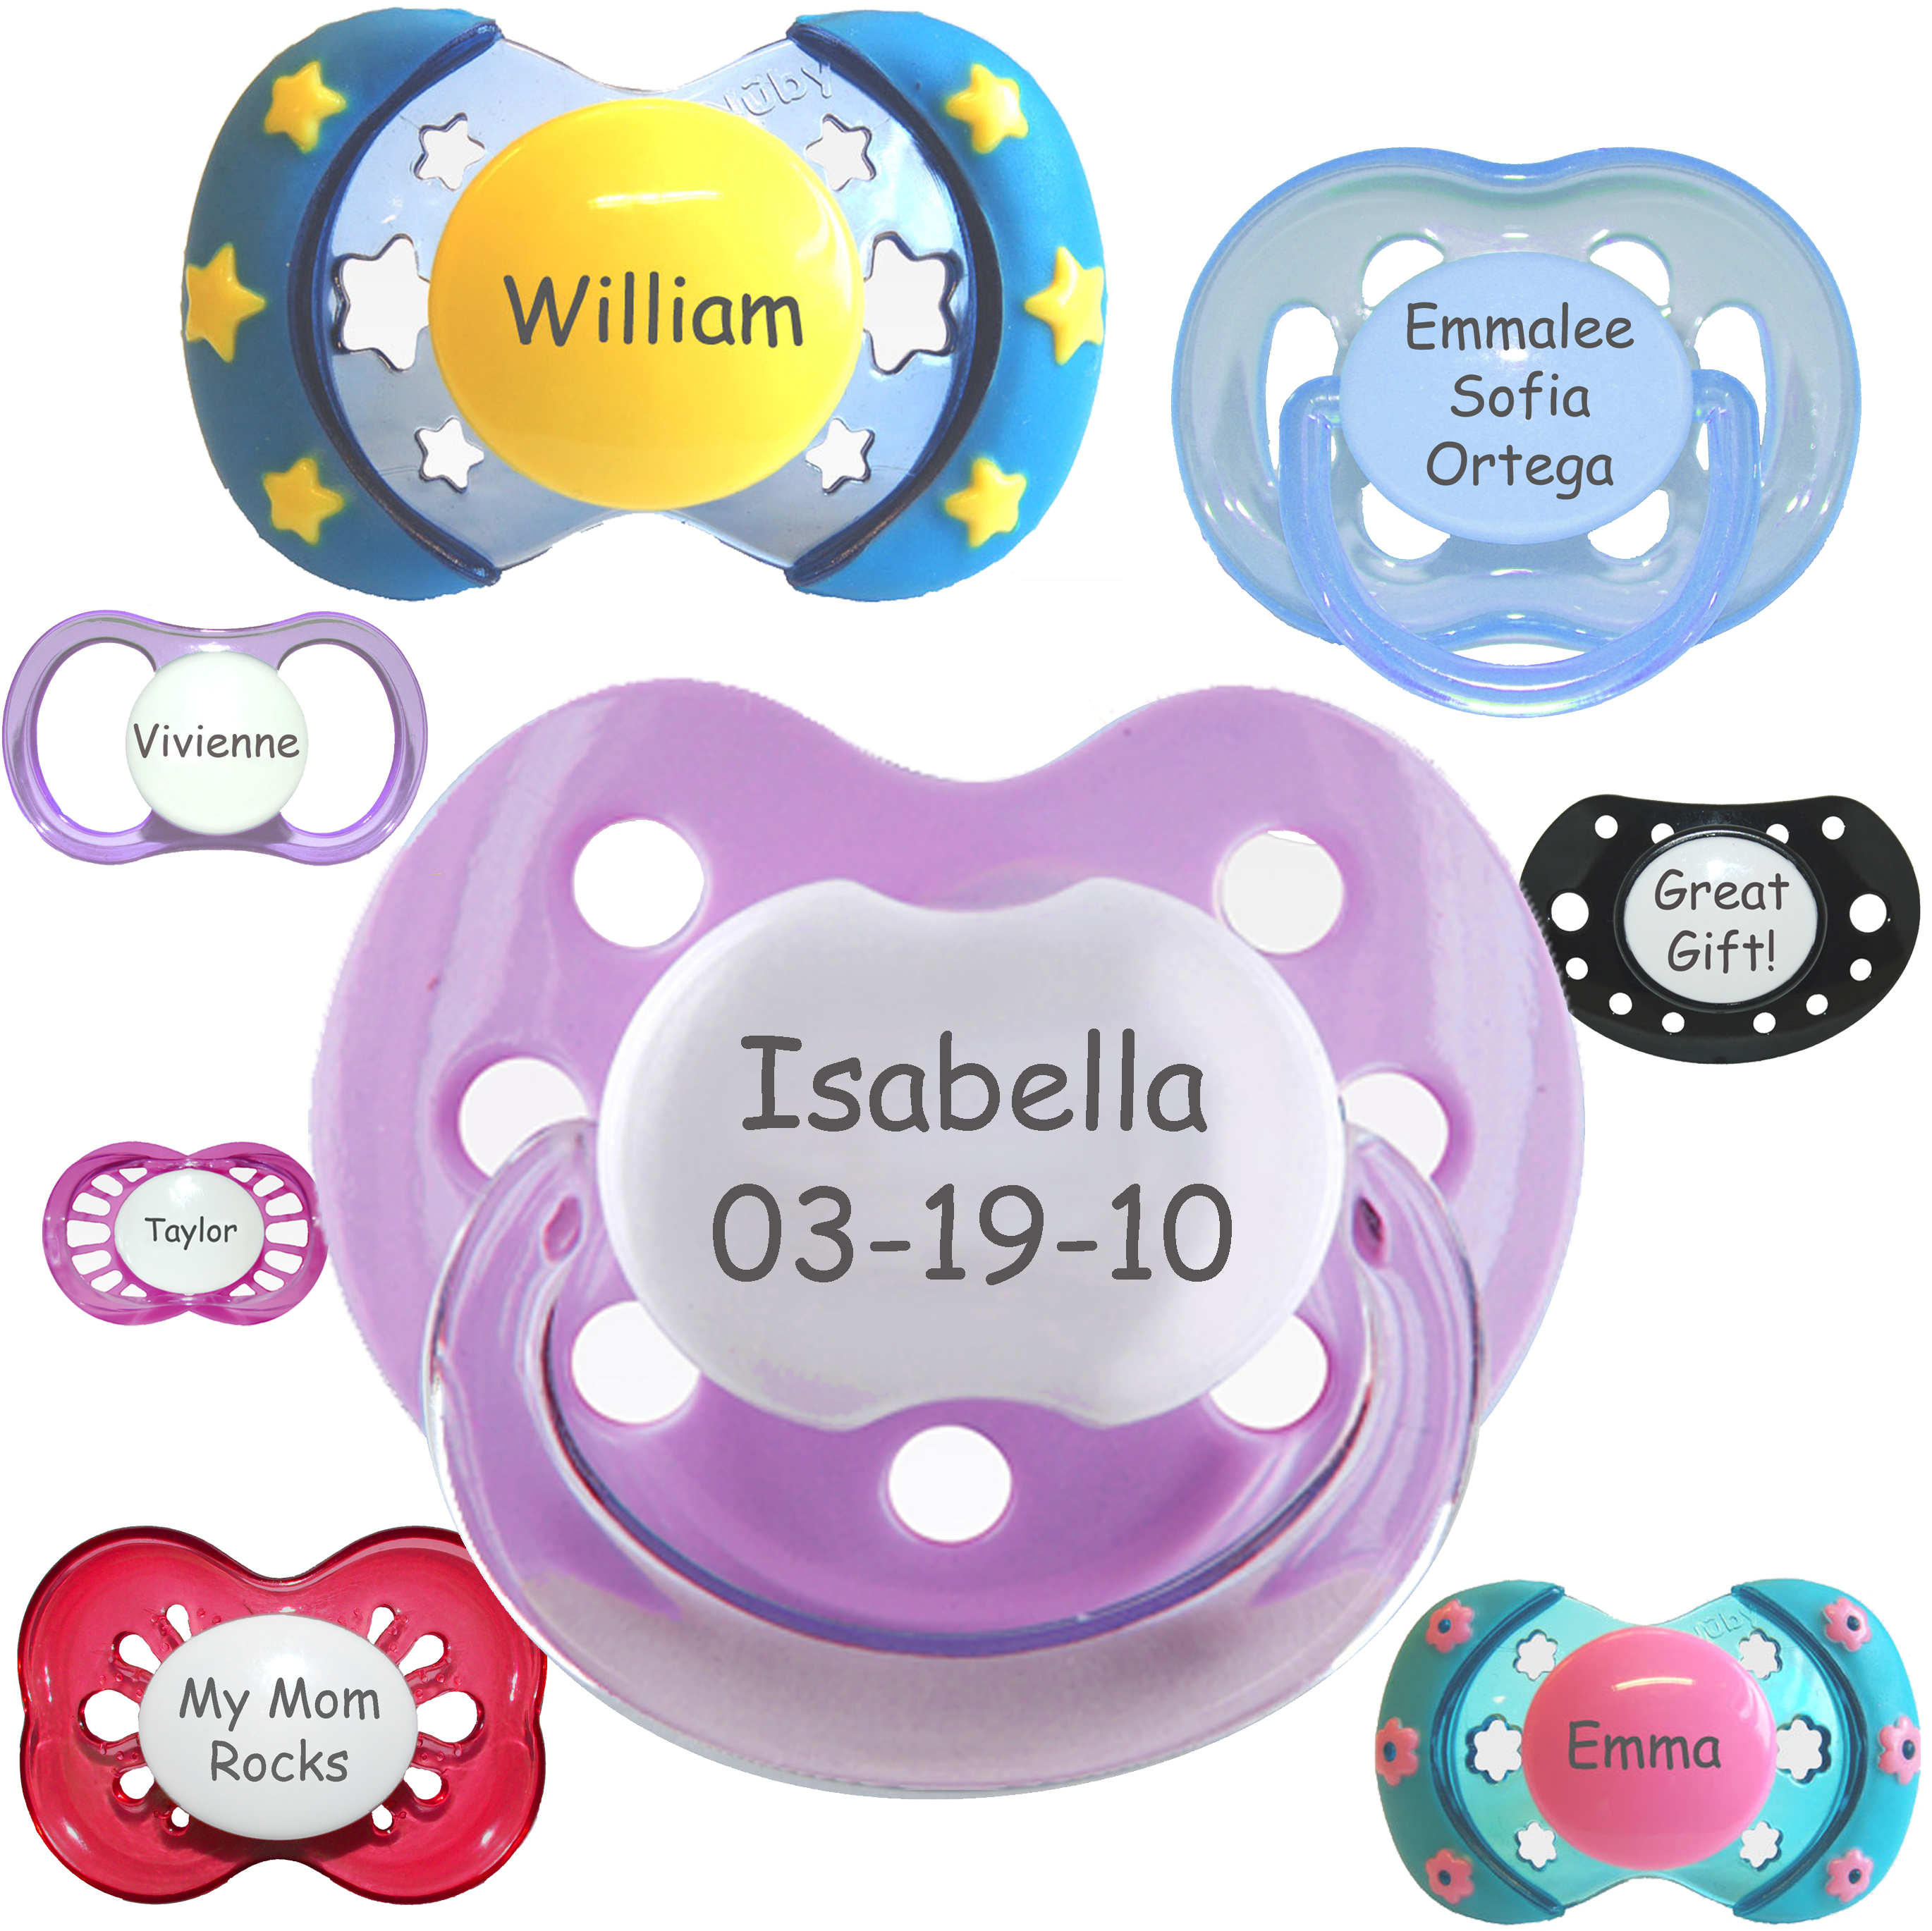 Mypacifier Com Personalized Pacifiers Participate In Scott